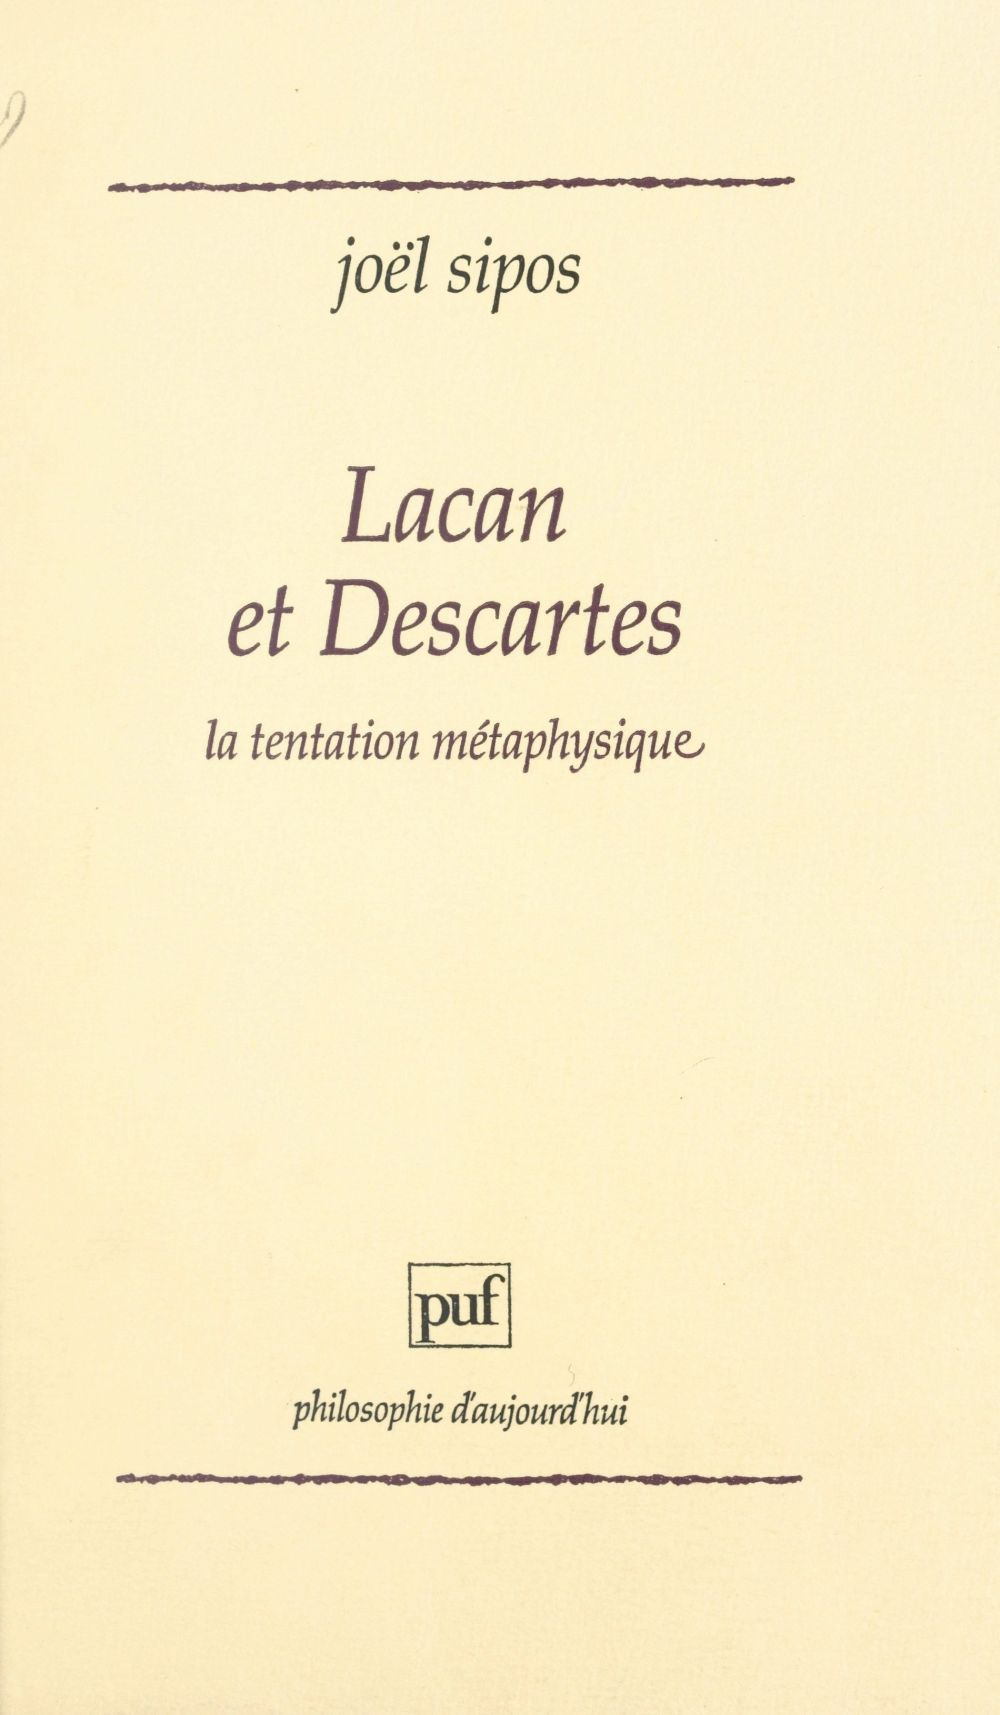 Lacan et Descartes